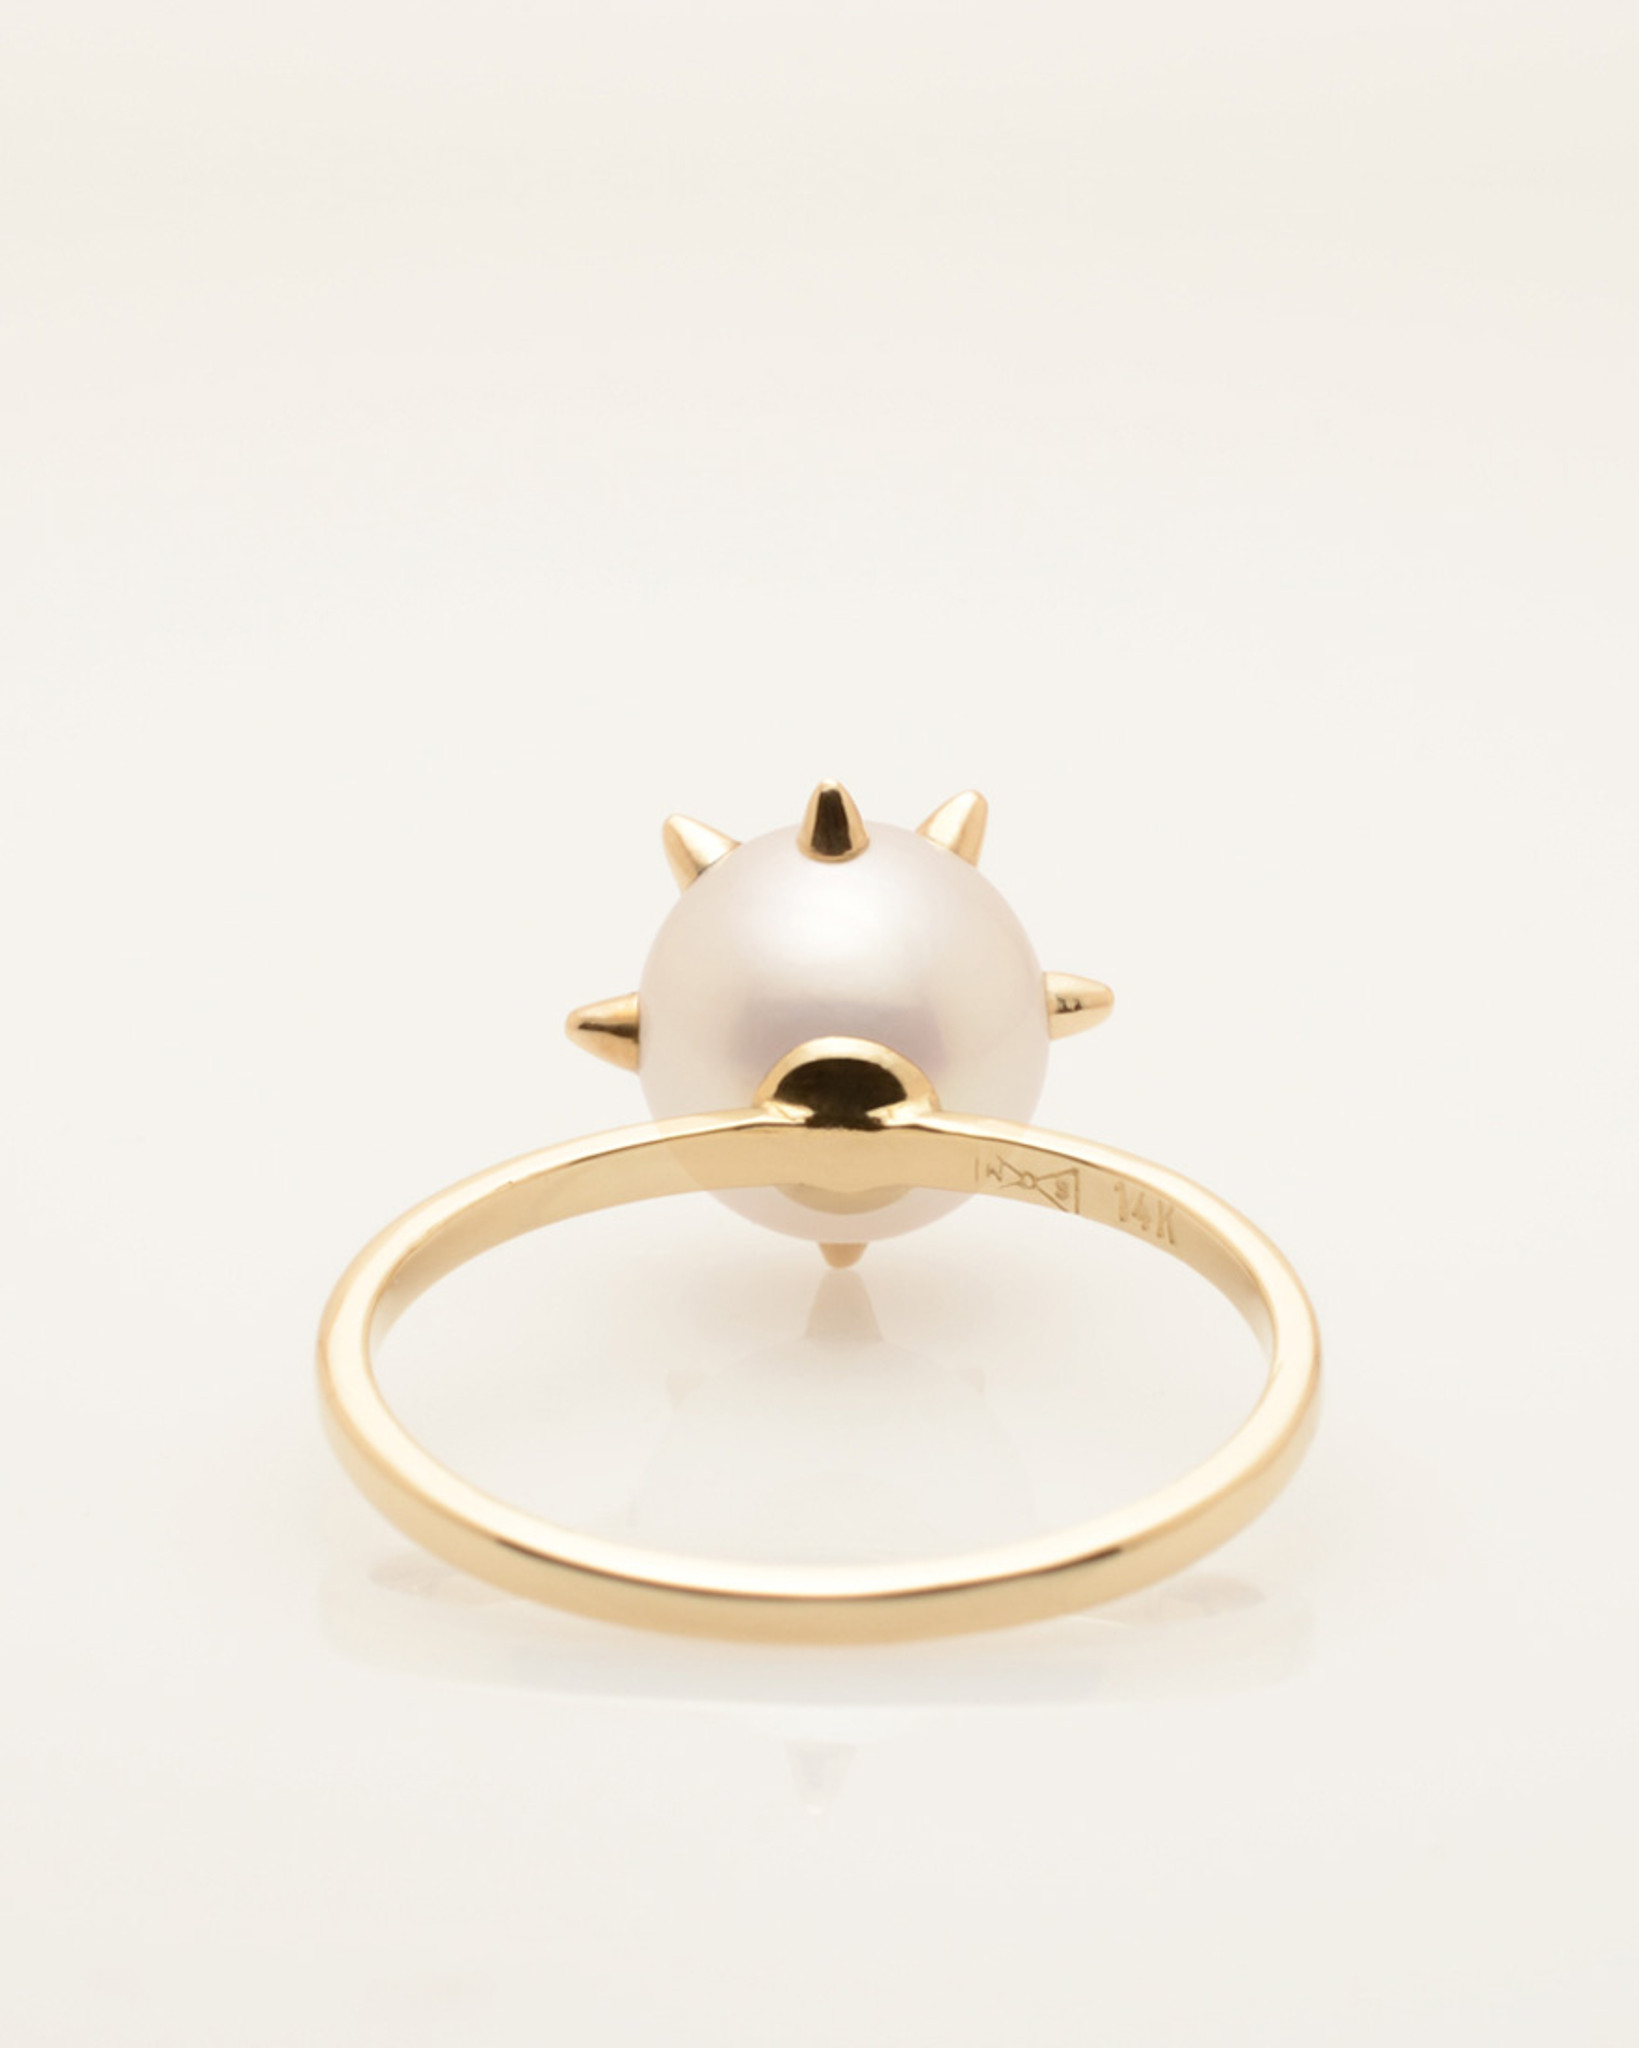 Back View of Cultured Freshwater Pearl Ring with 14k Gold Spikes and Band by Fine Jewelry Designer Nektar De Stagni (8-9mm. Size 5-6-7)